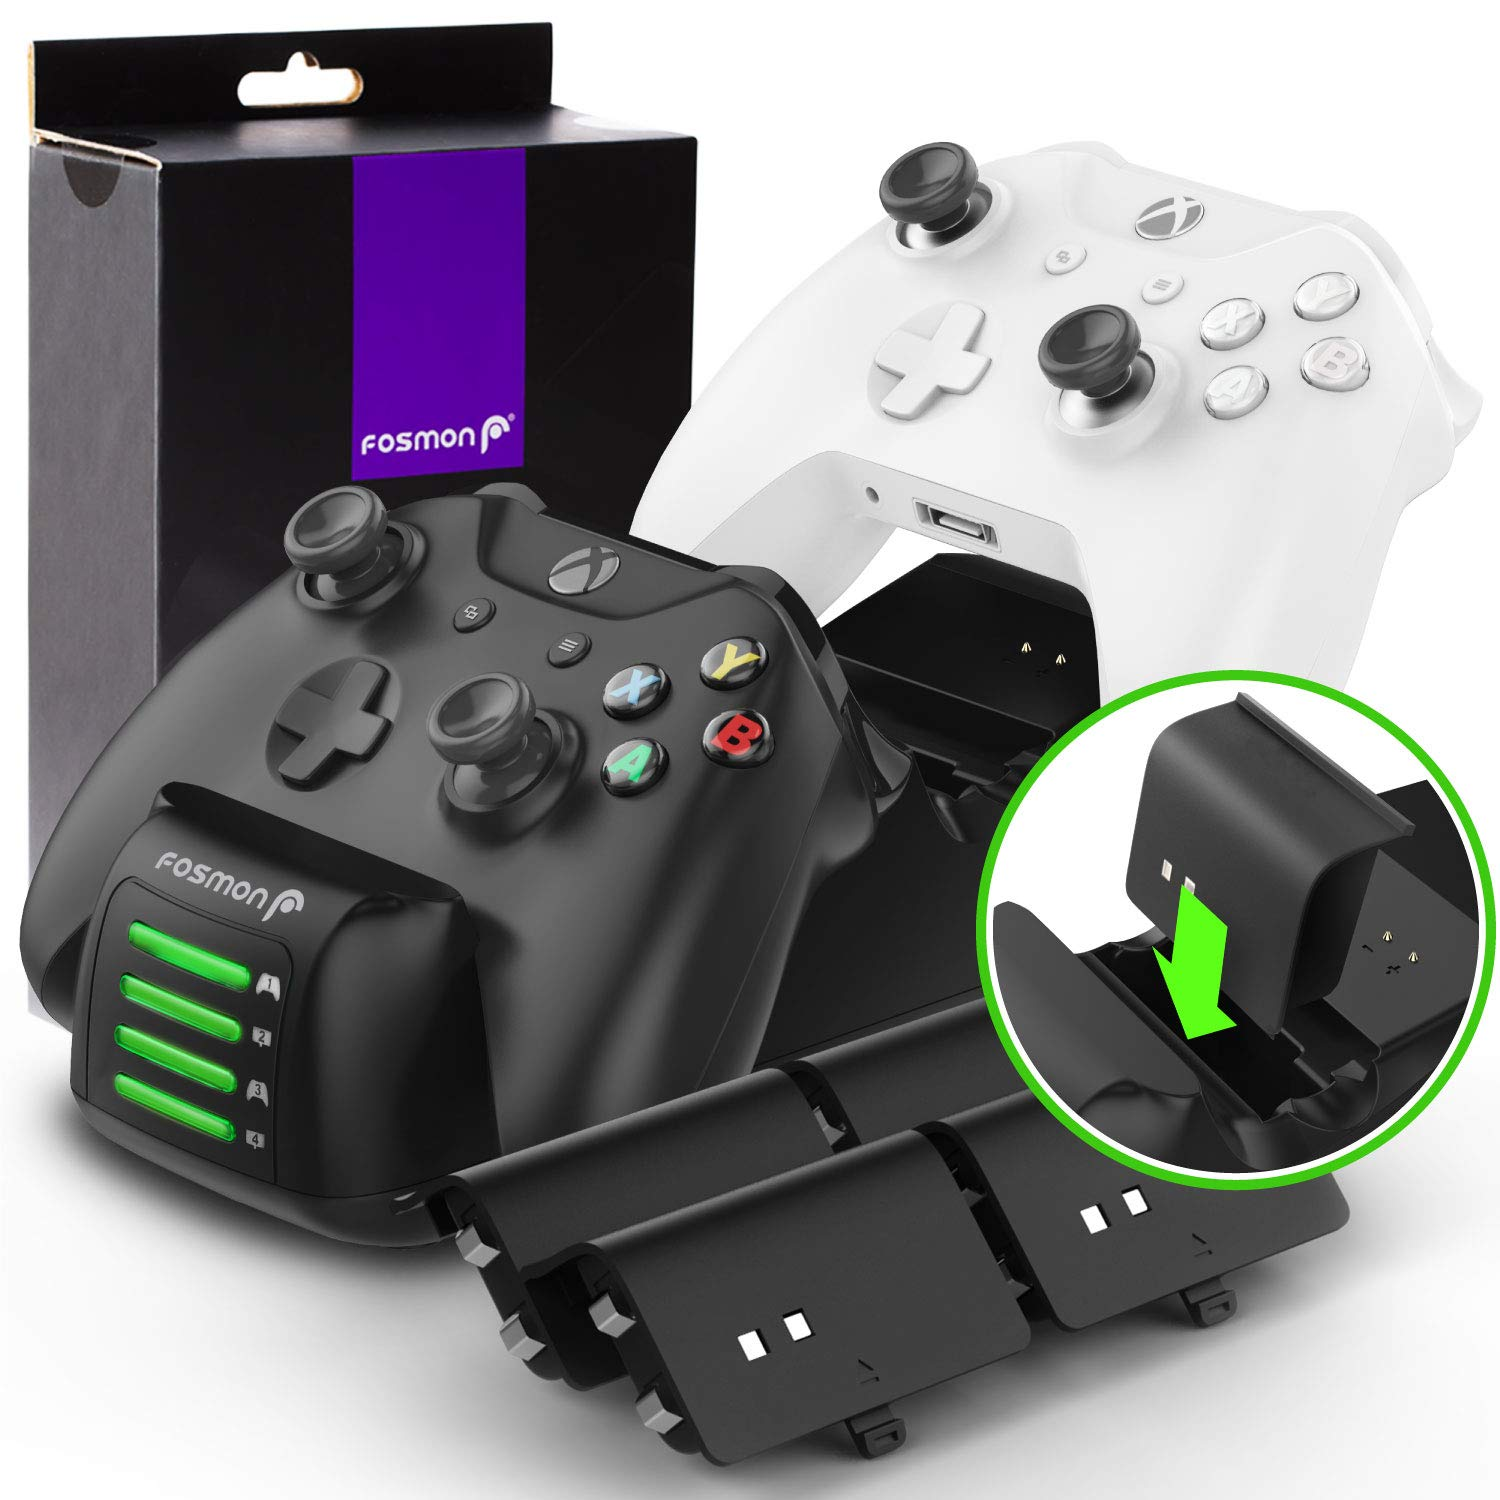 Fosmon Xbox One/One X/One S/Elite Quad PRO Controller Charger (Upgraded), [Dual Dock + 2 Additional Batteries Slot] High Speed Docking Charging Station with 4 x 1000mAh Rechargeable Battery Packs